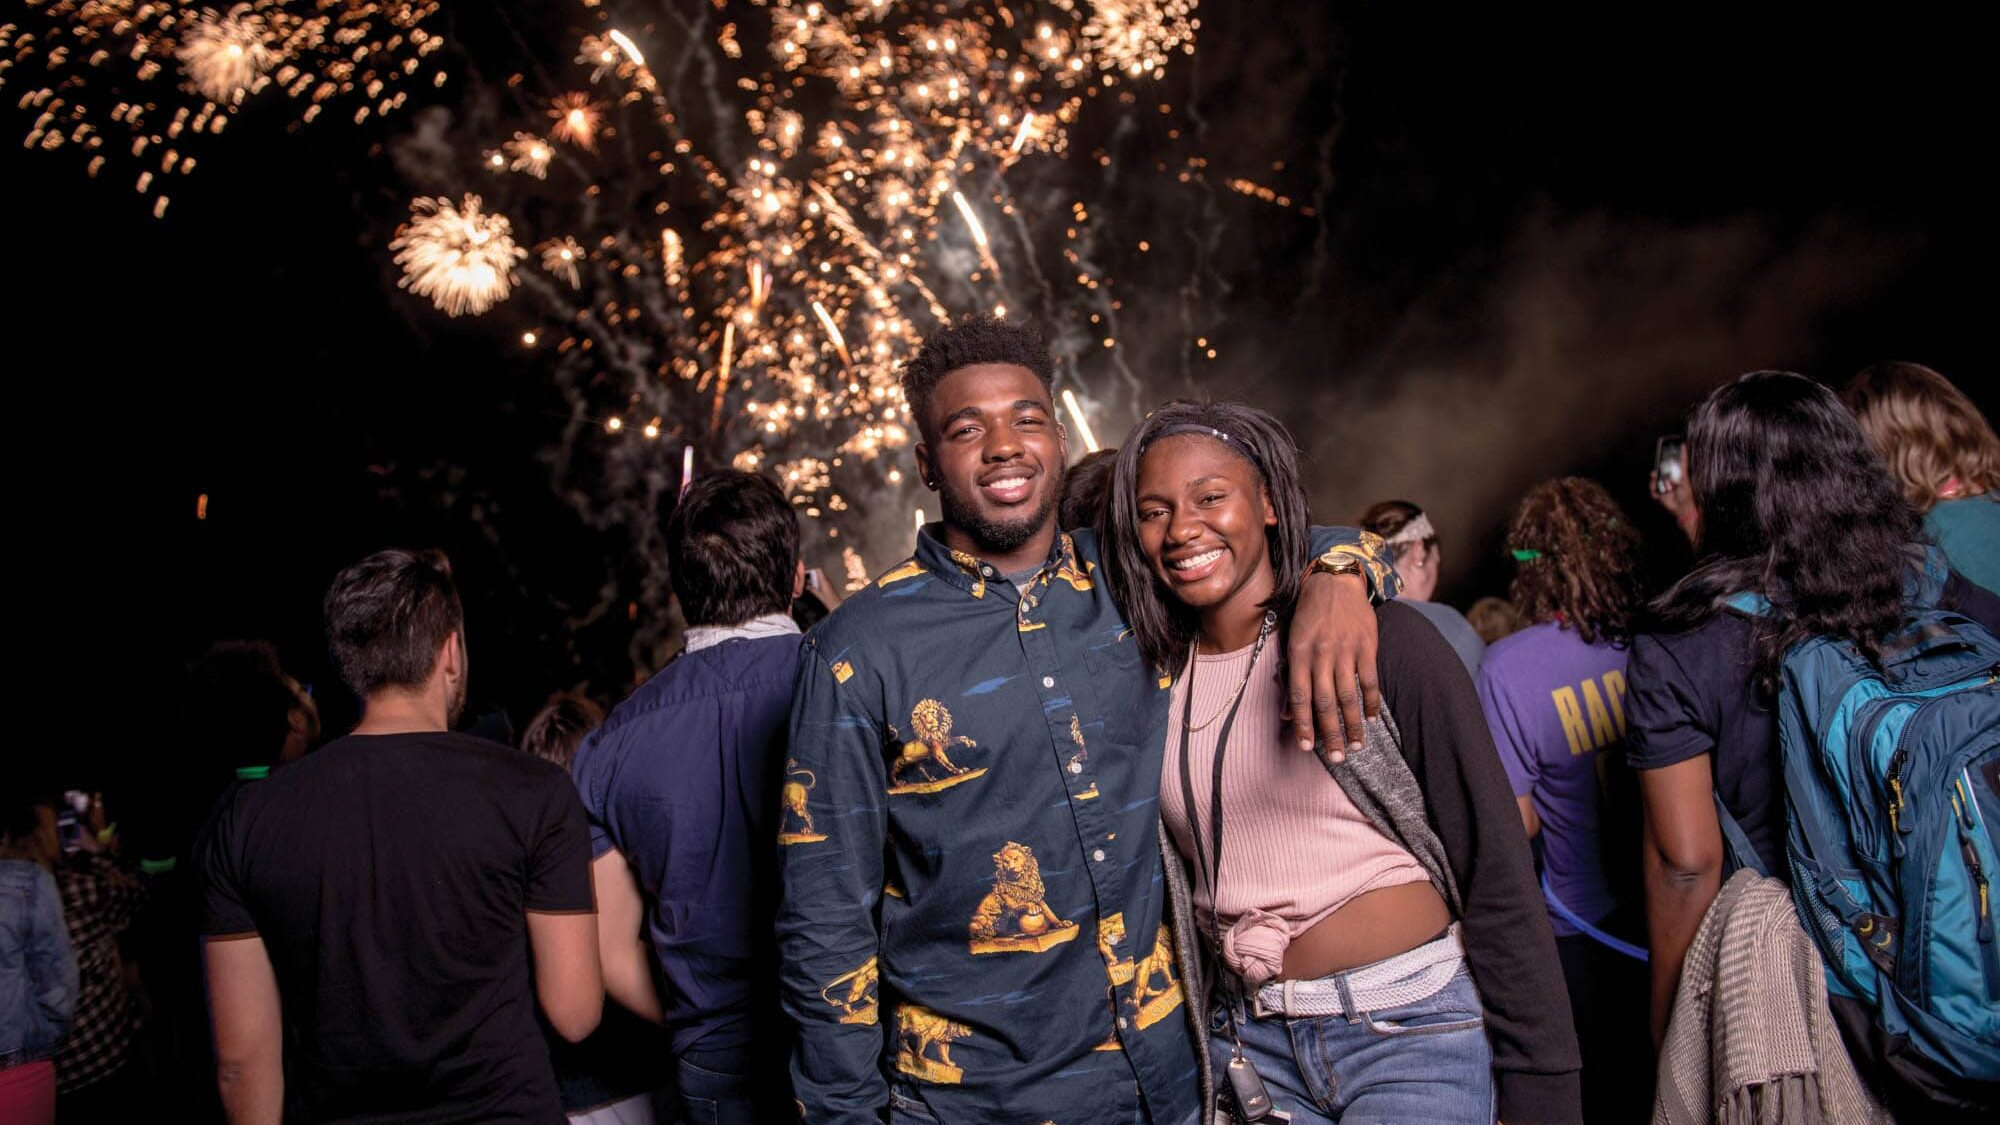 Two students smiling to the camera with fireworks in the background.